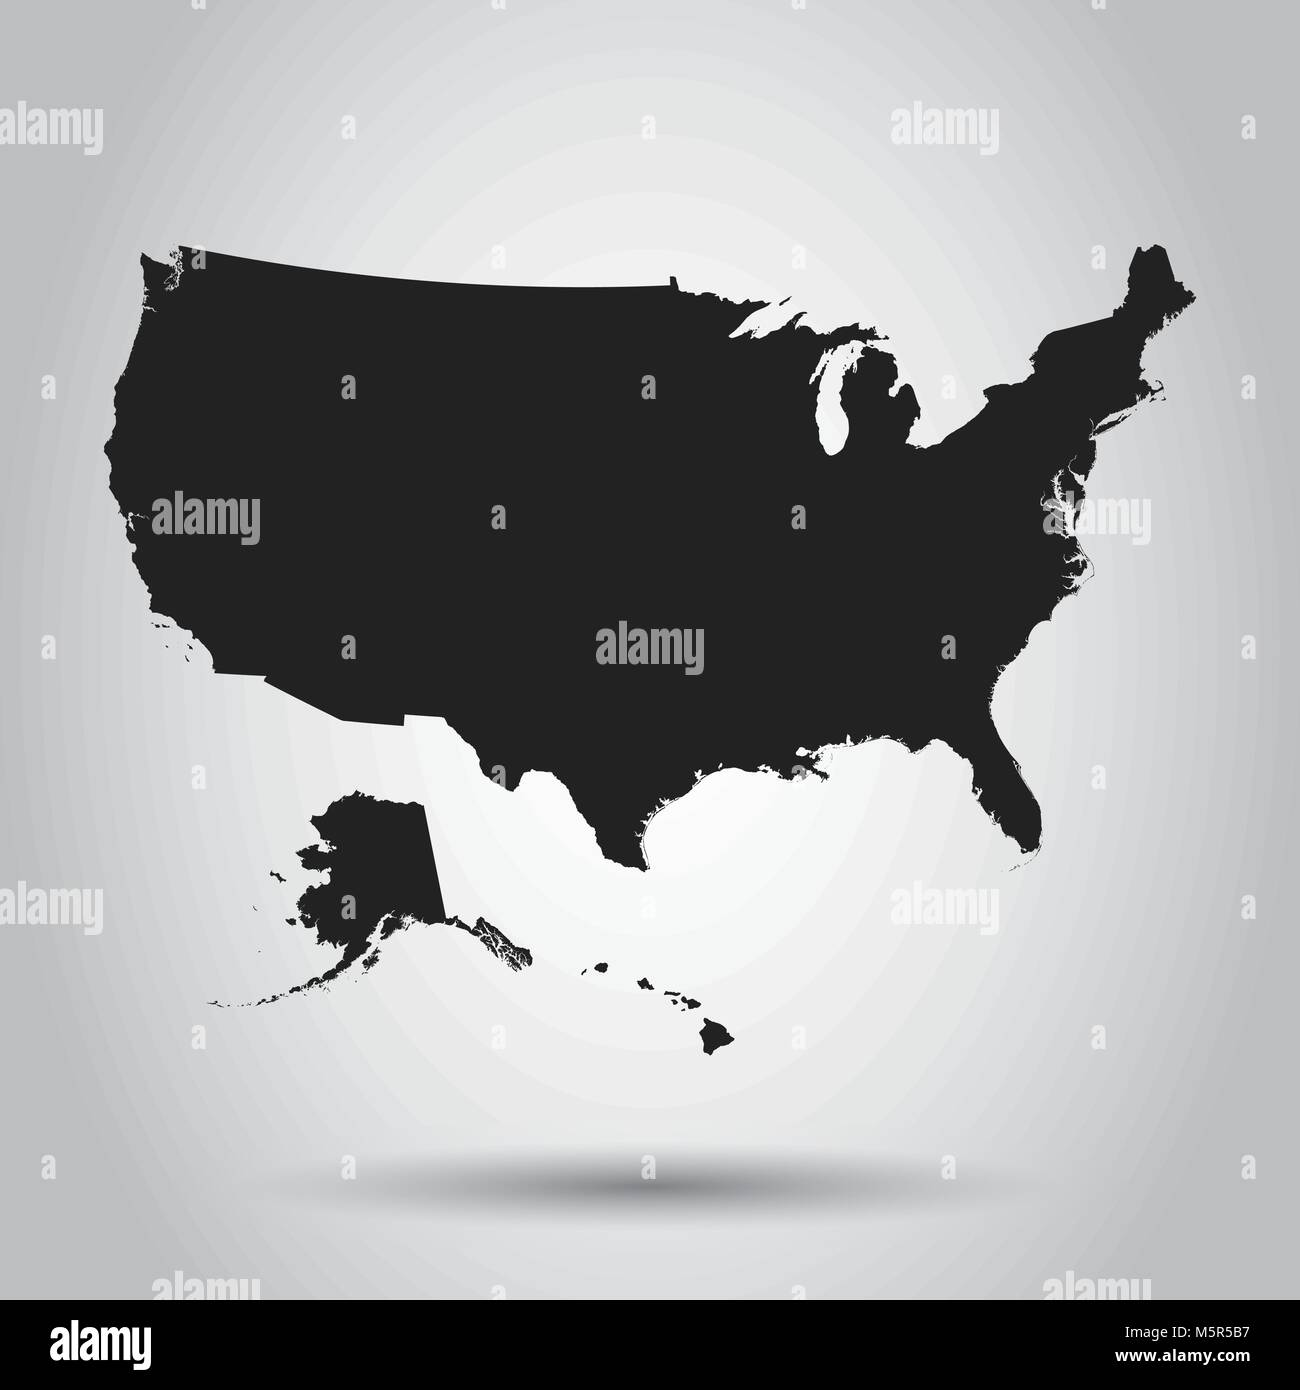 usa map icon business cartography concept united states of america pictogram vector illustration on